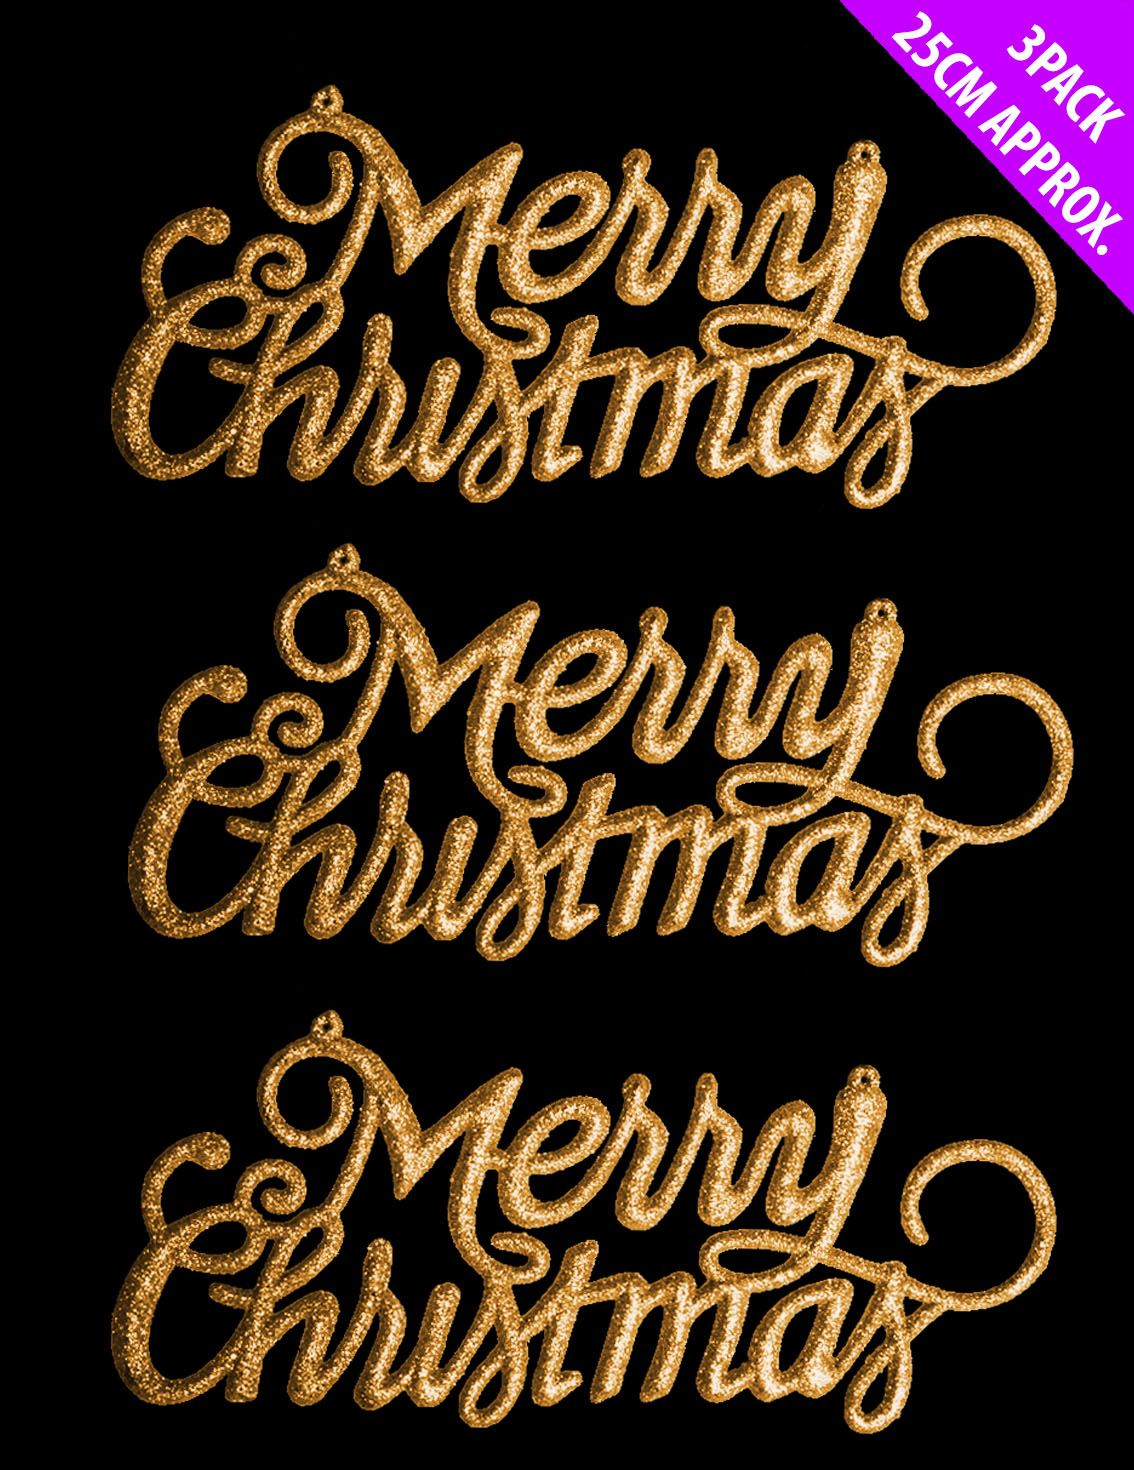 Wars Merry Christmas Font Star